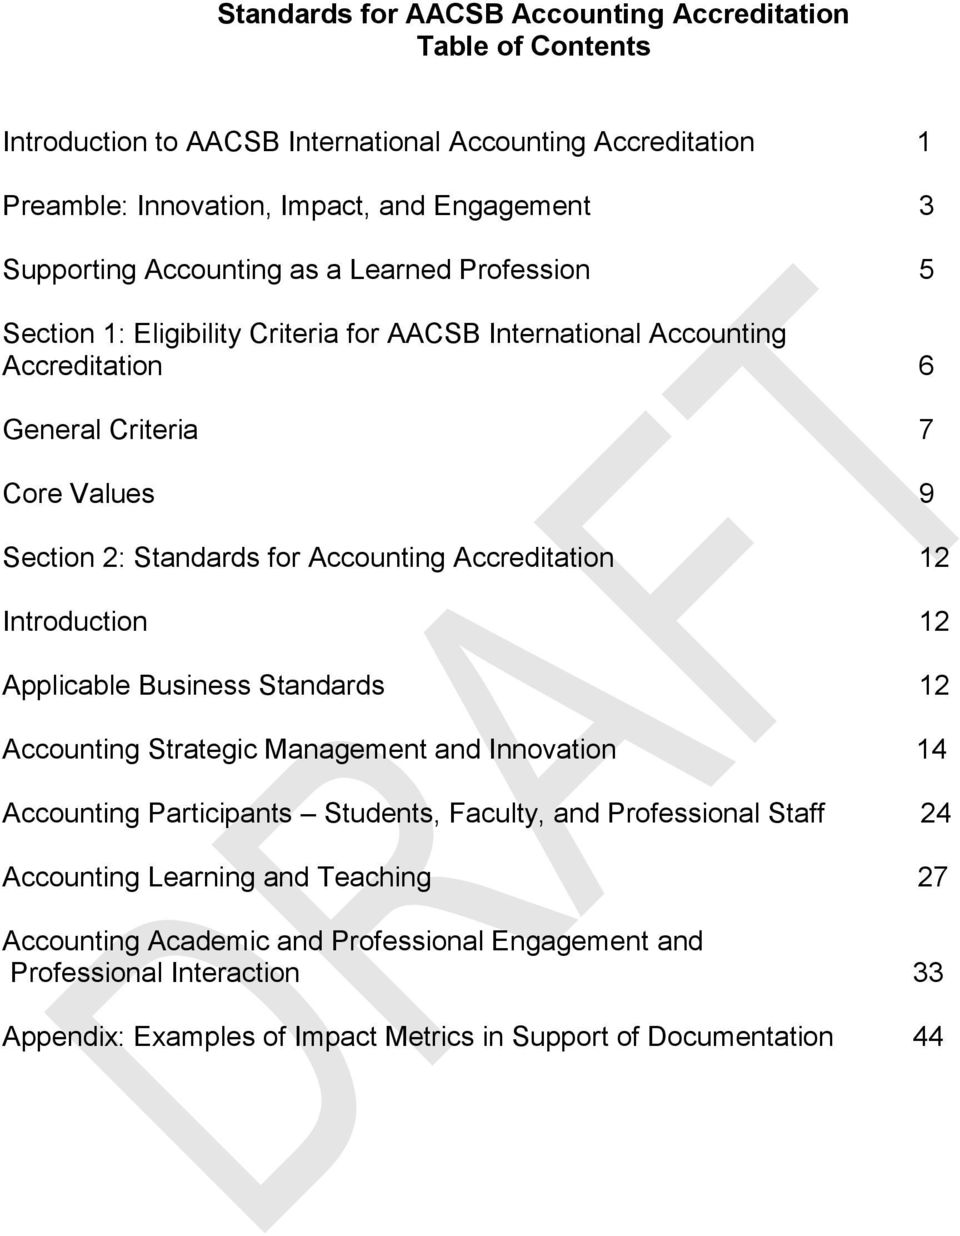 Accounting Accreditation 12 Introduction 12 Applicable Business Standards 12 Accounting Strategic Management and Innovation 14 Accounting Participants Students, Faculty, and